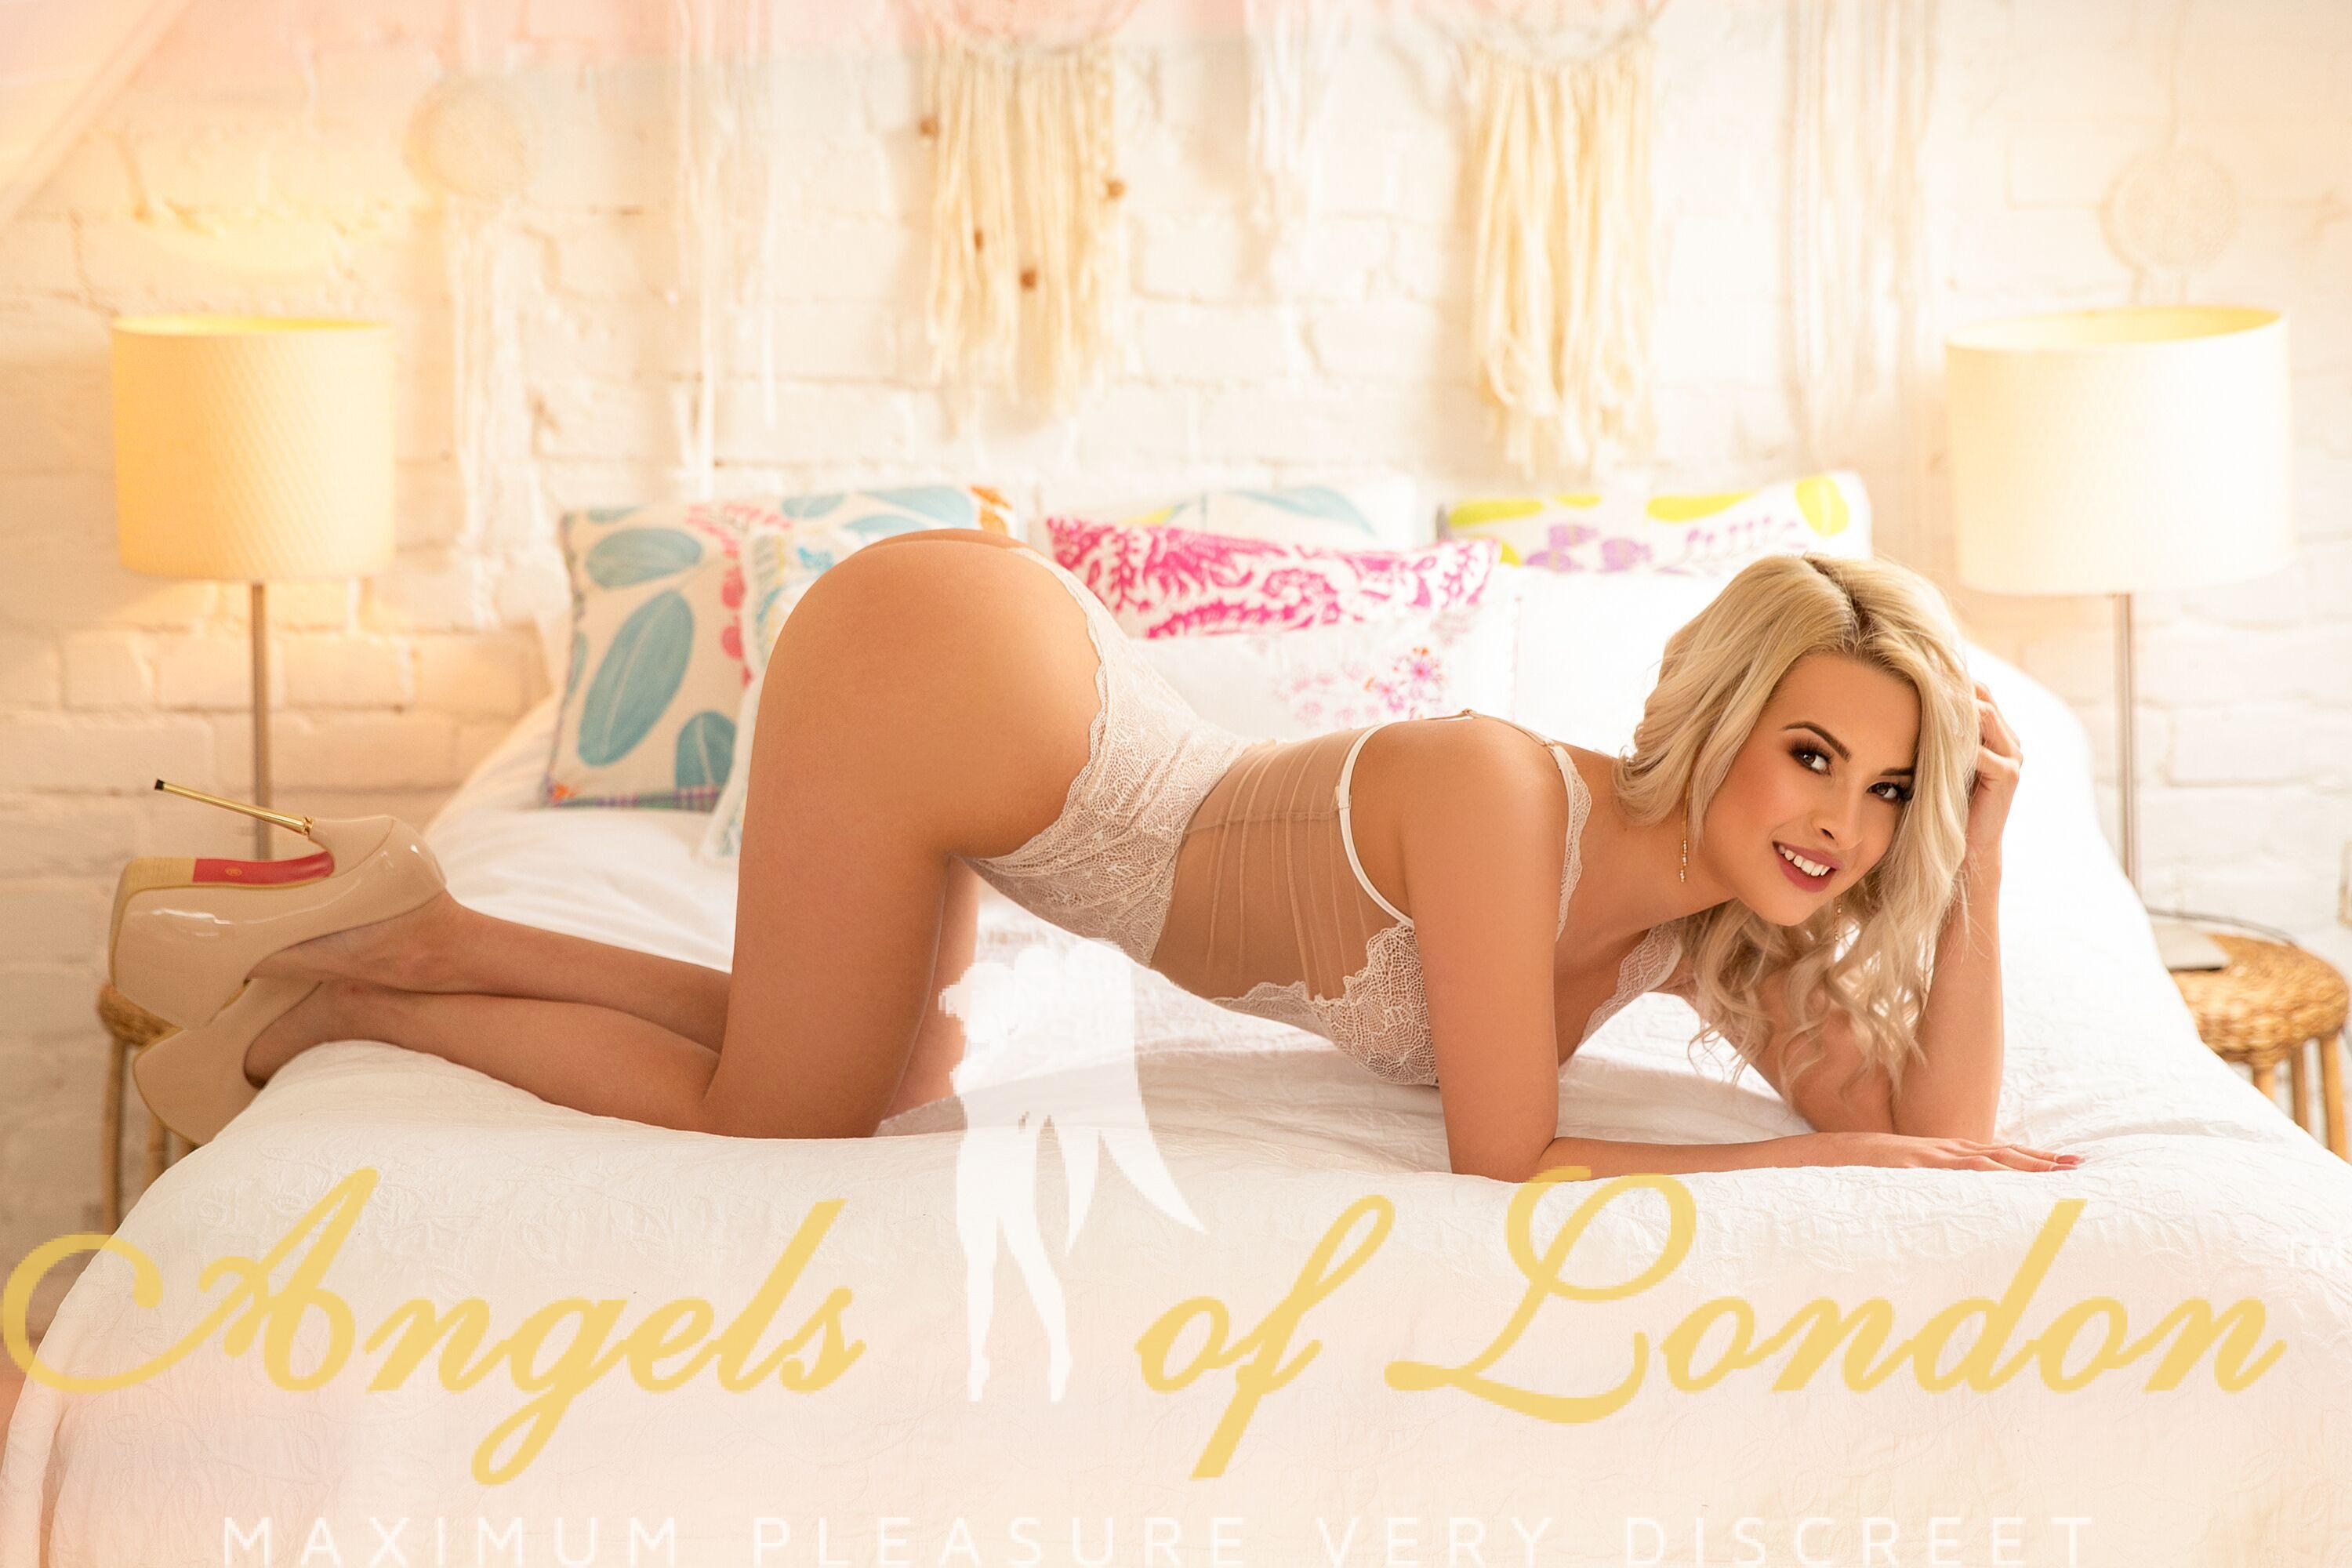 Rosana from Angels of London